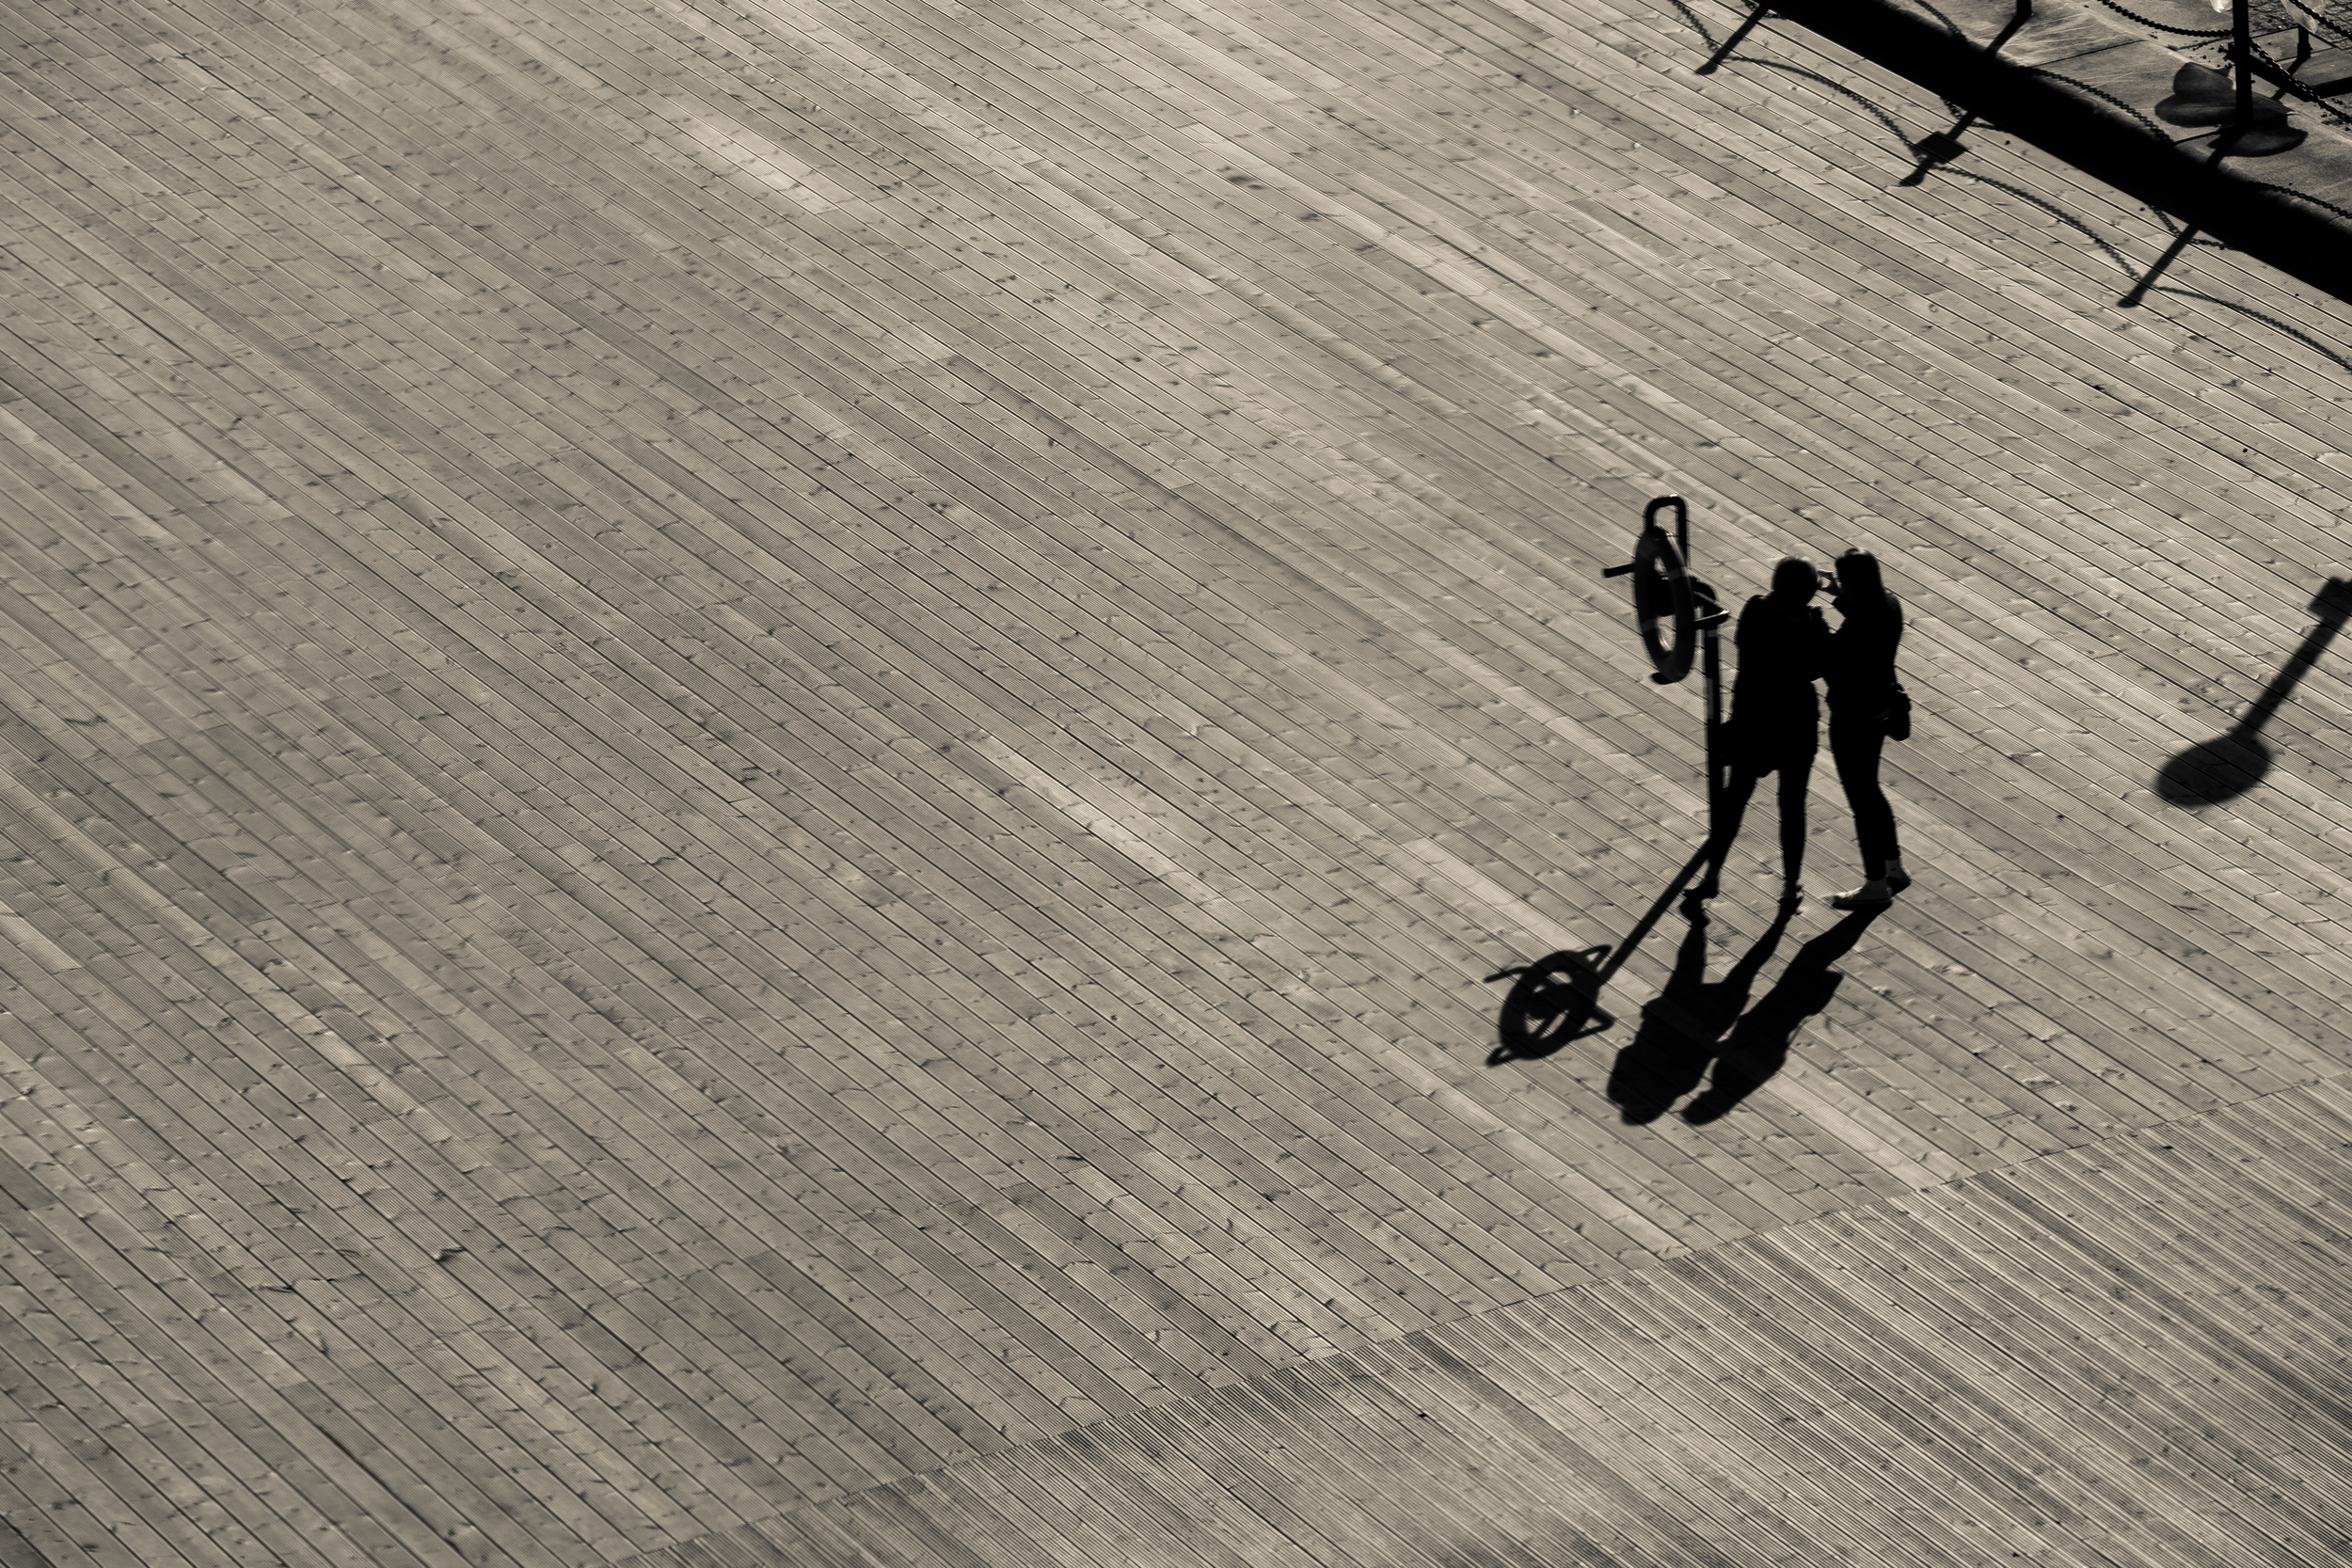 A Selfie Together  Let's see: an awesome wooden texture, amazing light, people interacting naturally (and quite narcissistically) and of course, me being a sucker for a silhouette? This picture makes the cut.